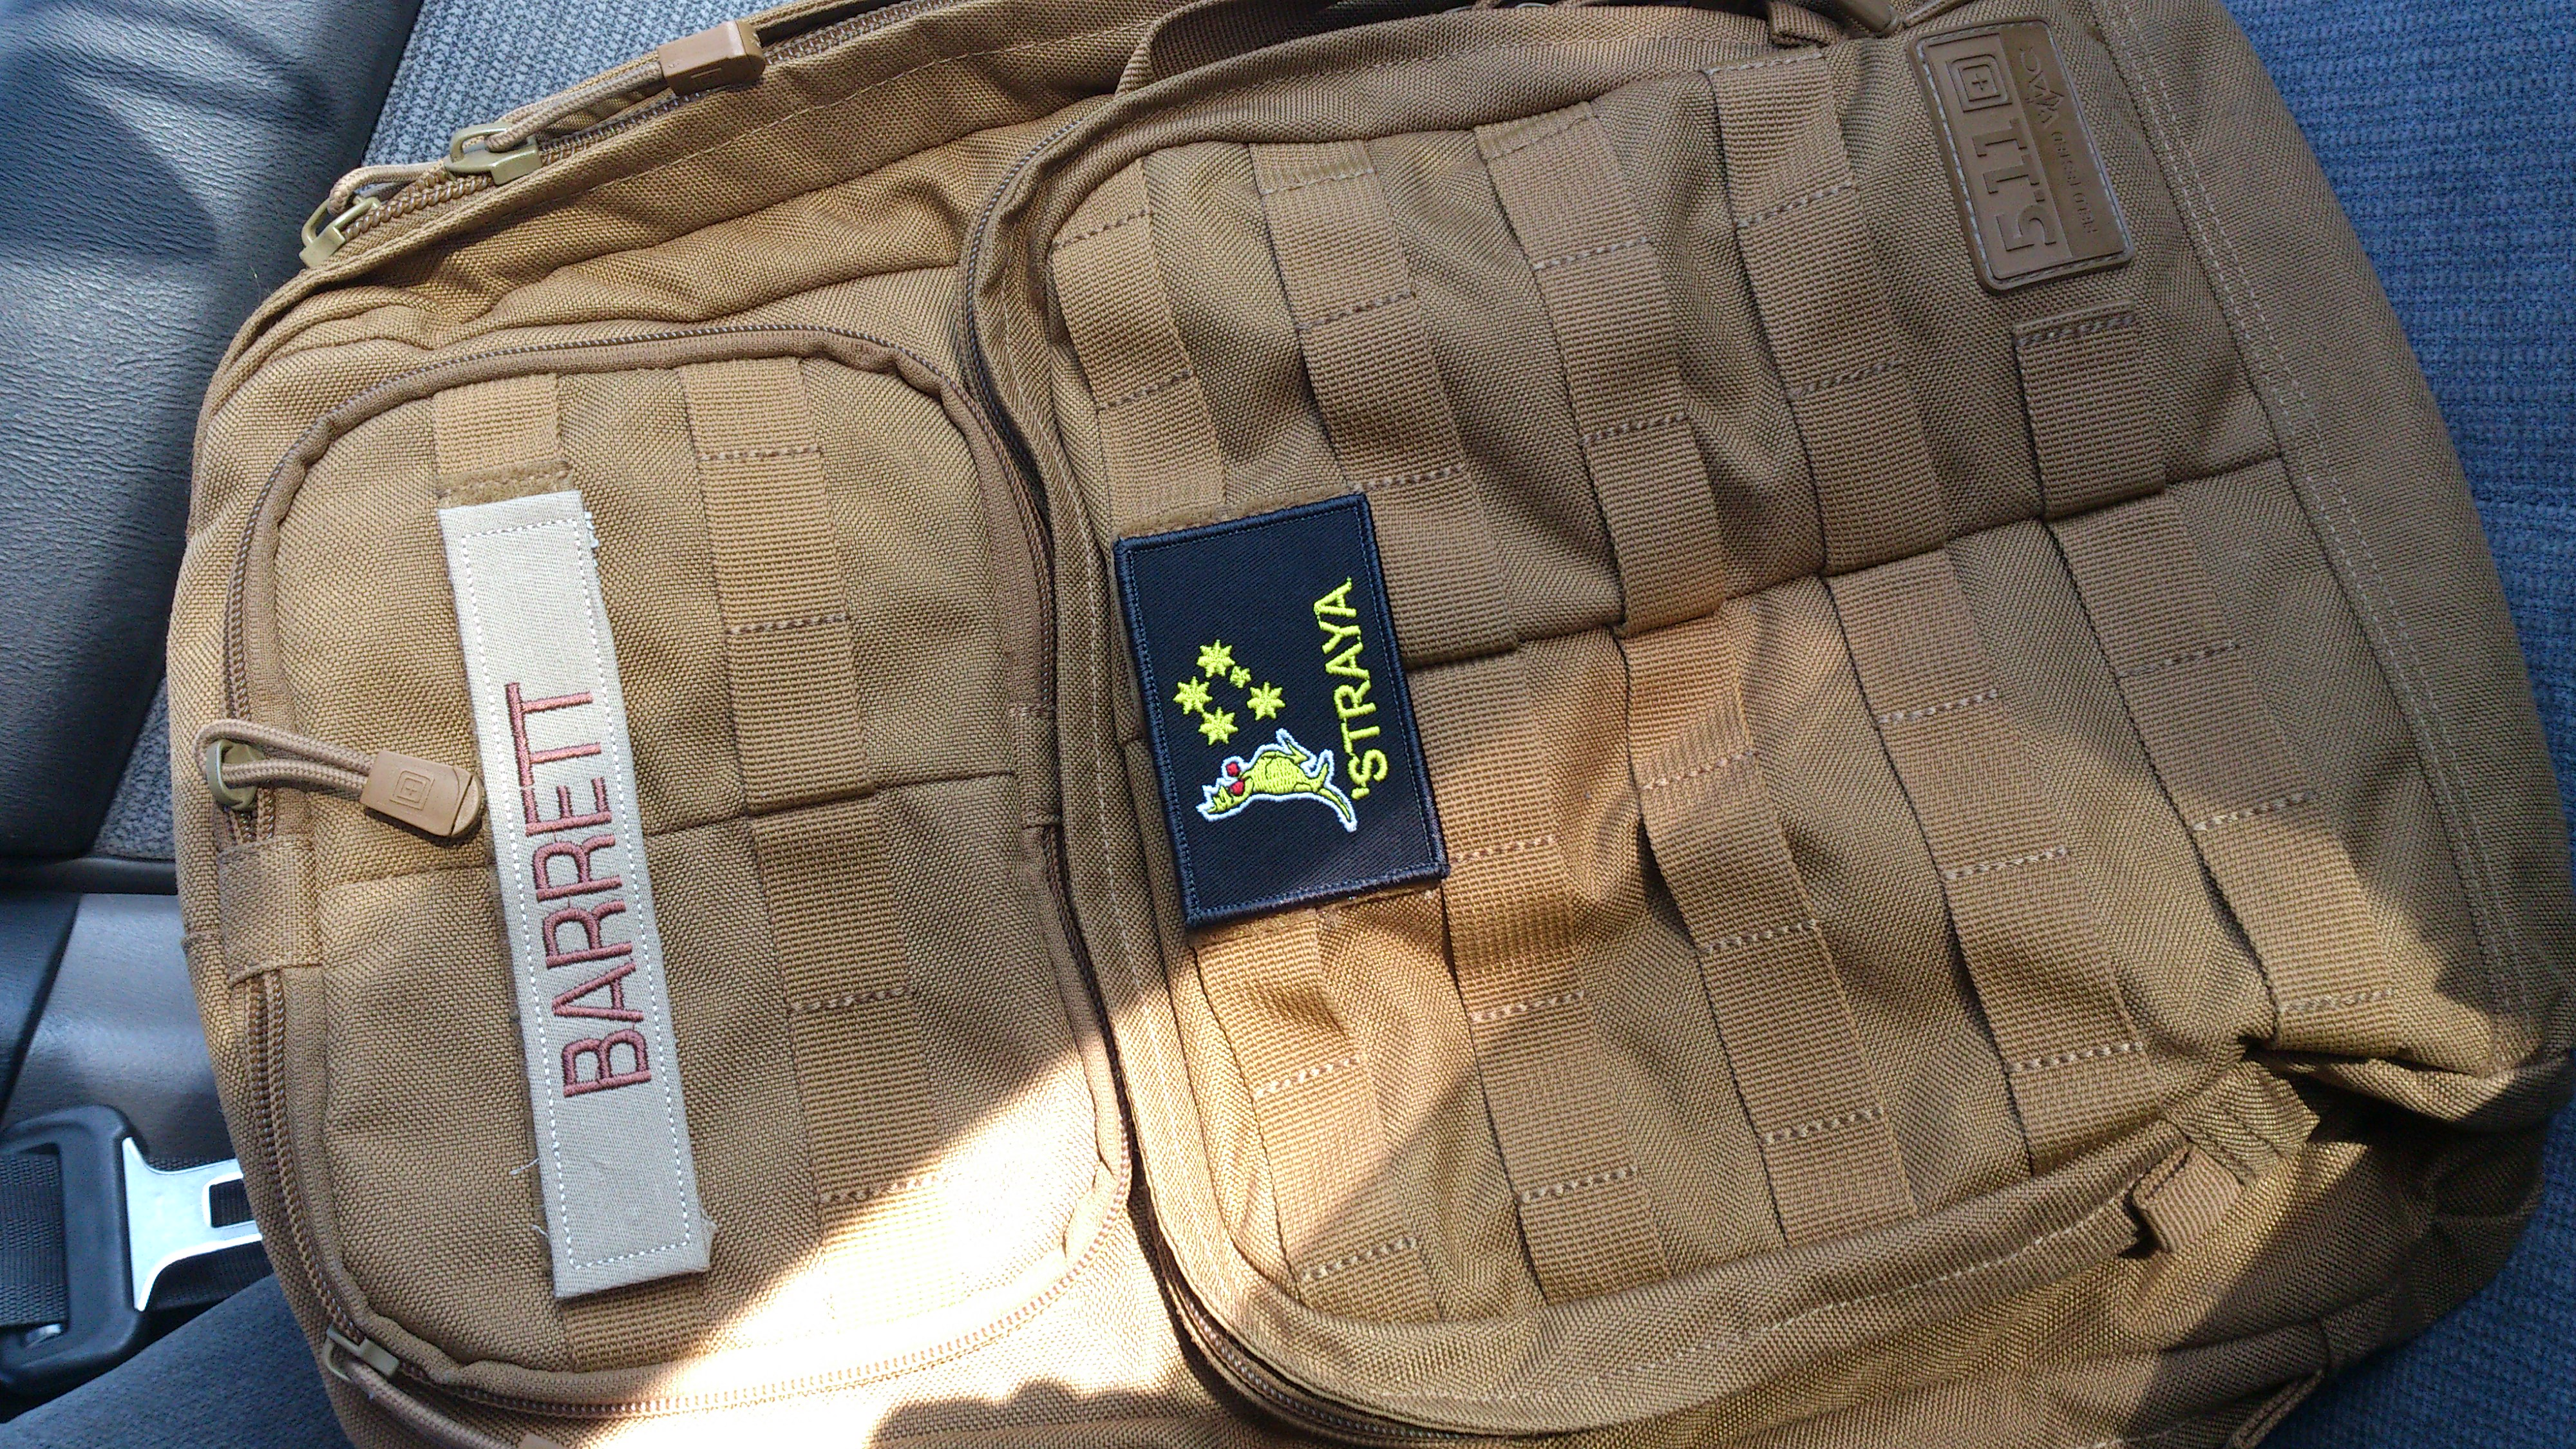 more tactical patches and tactical gear